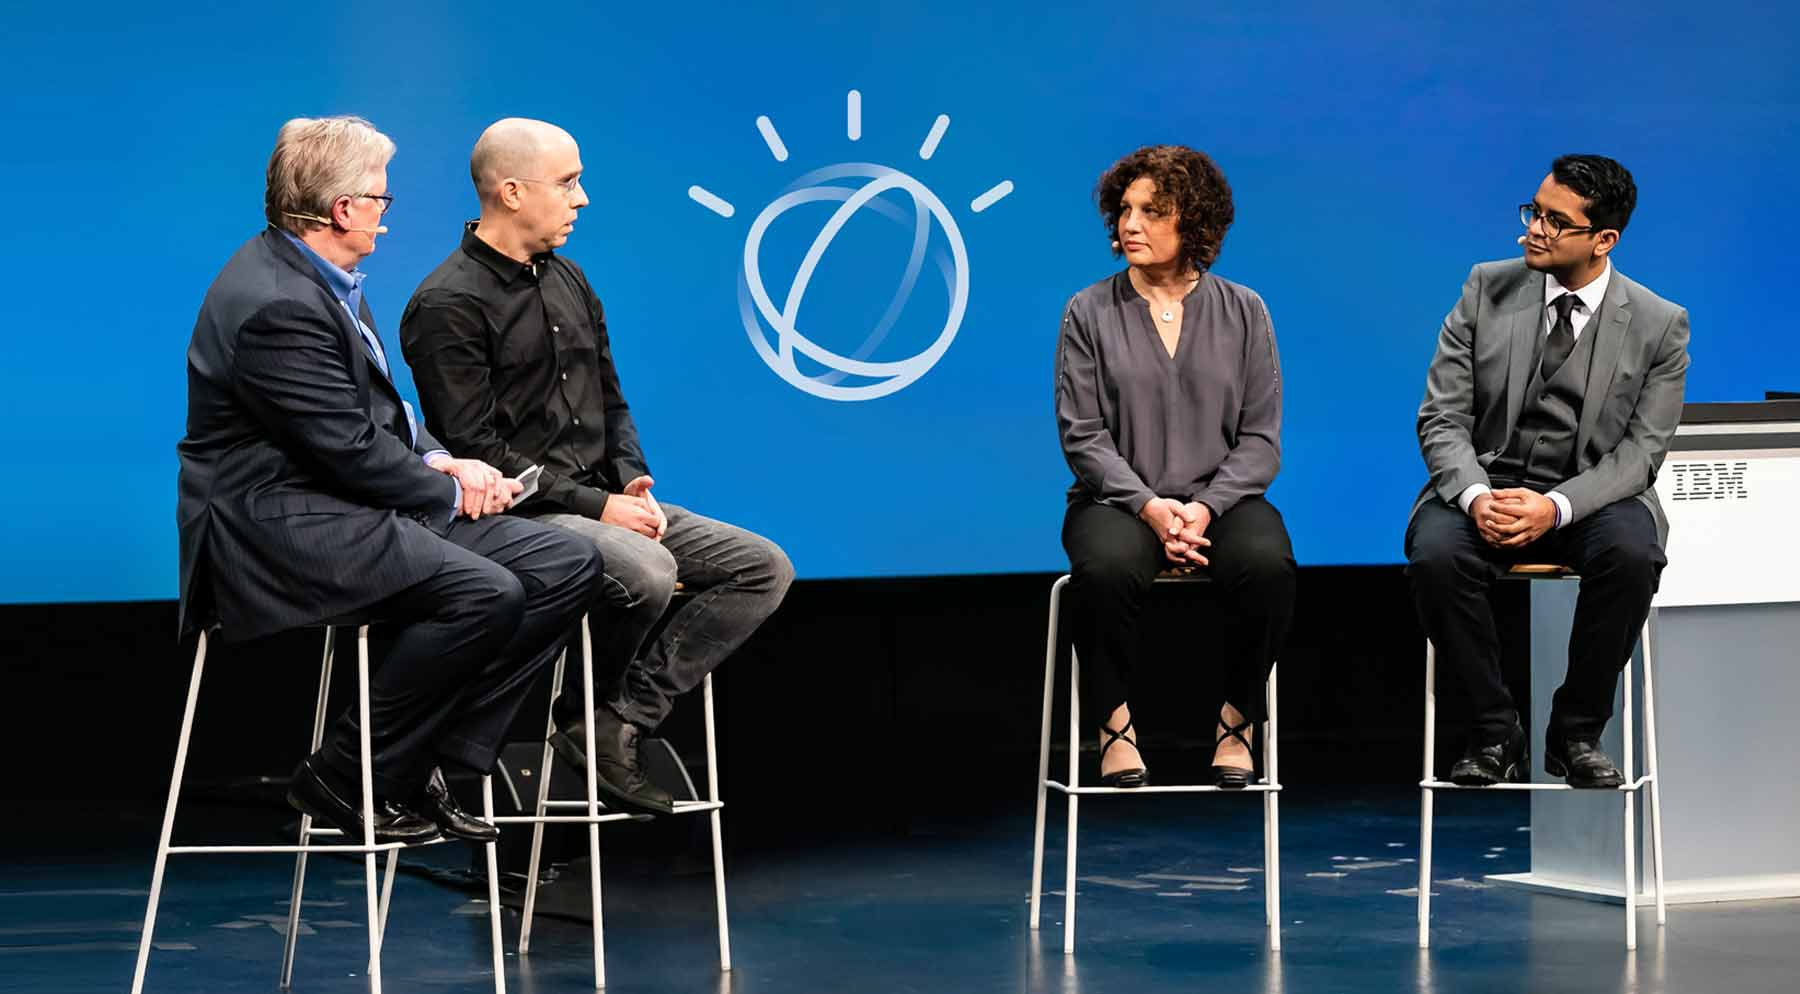 Four presenters on stage with Watson logo